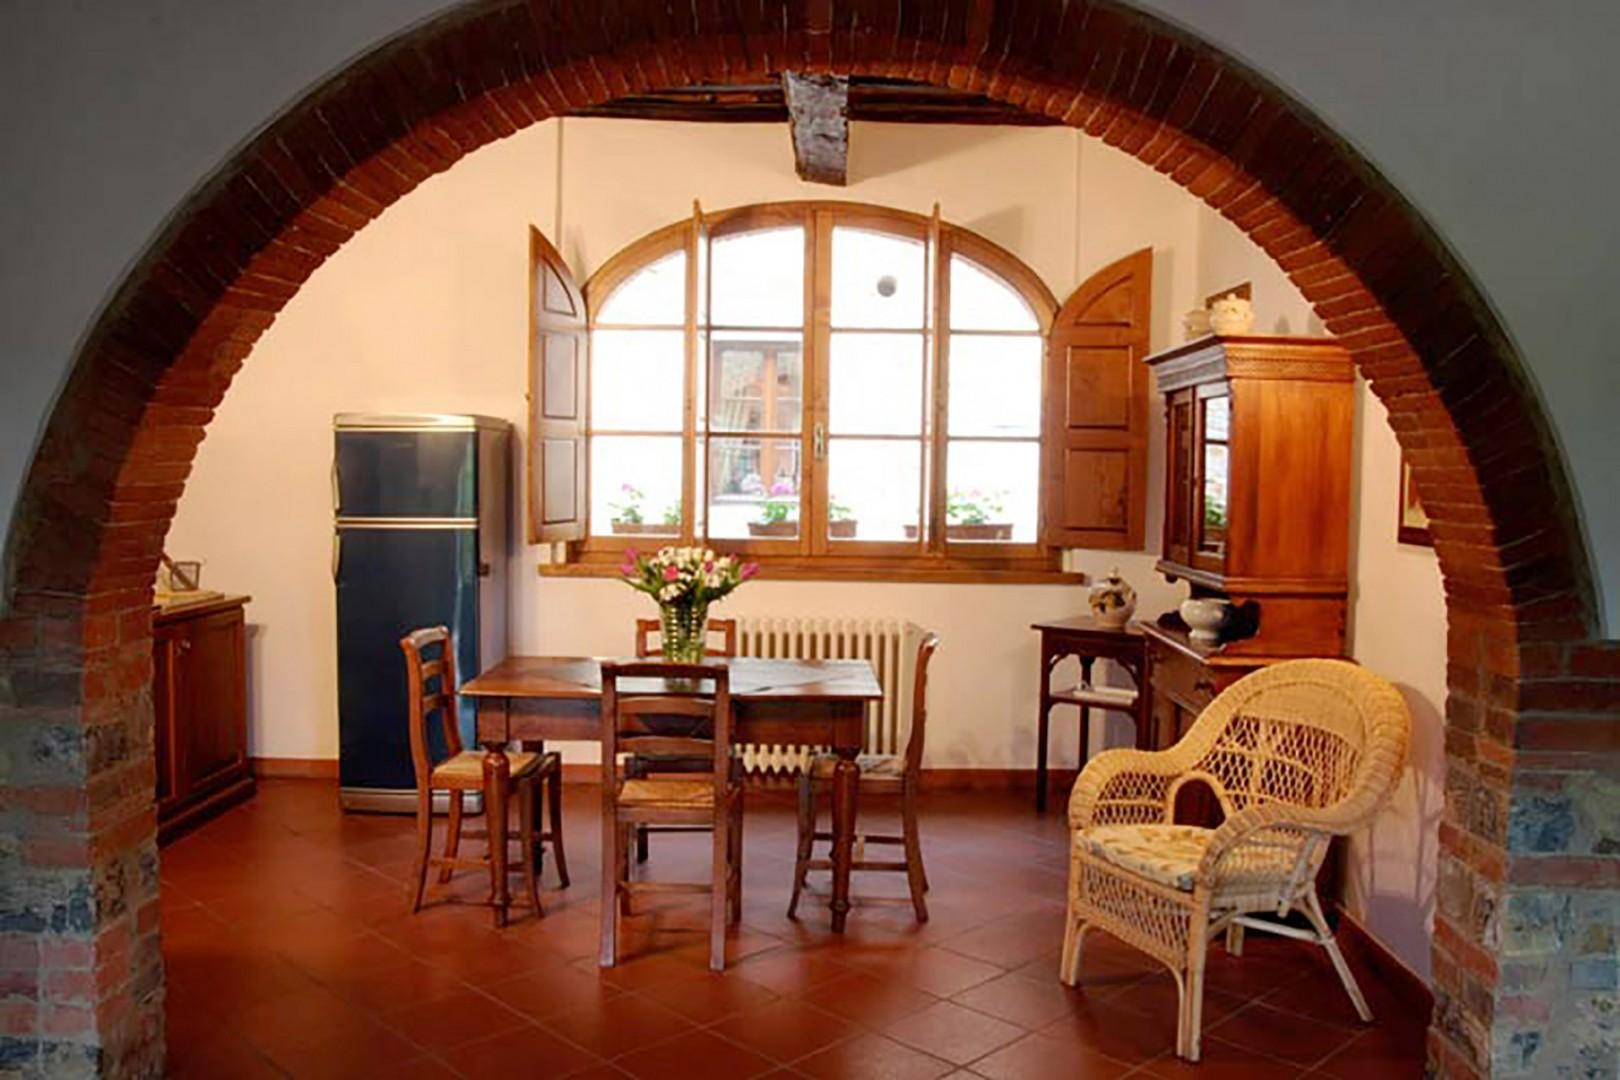 An archway opens between the living room and the dining area with kitchenette.